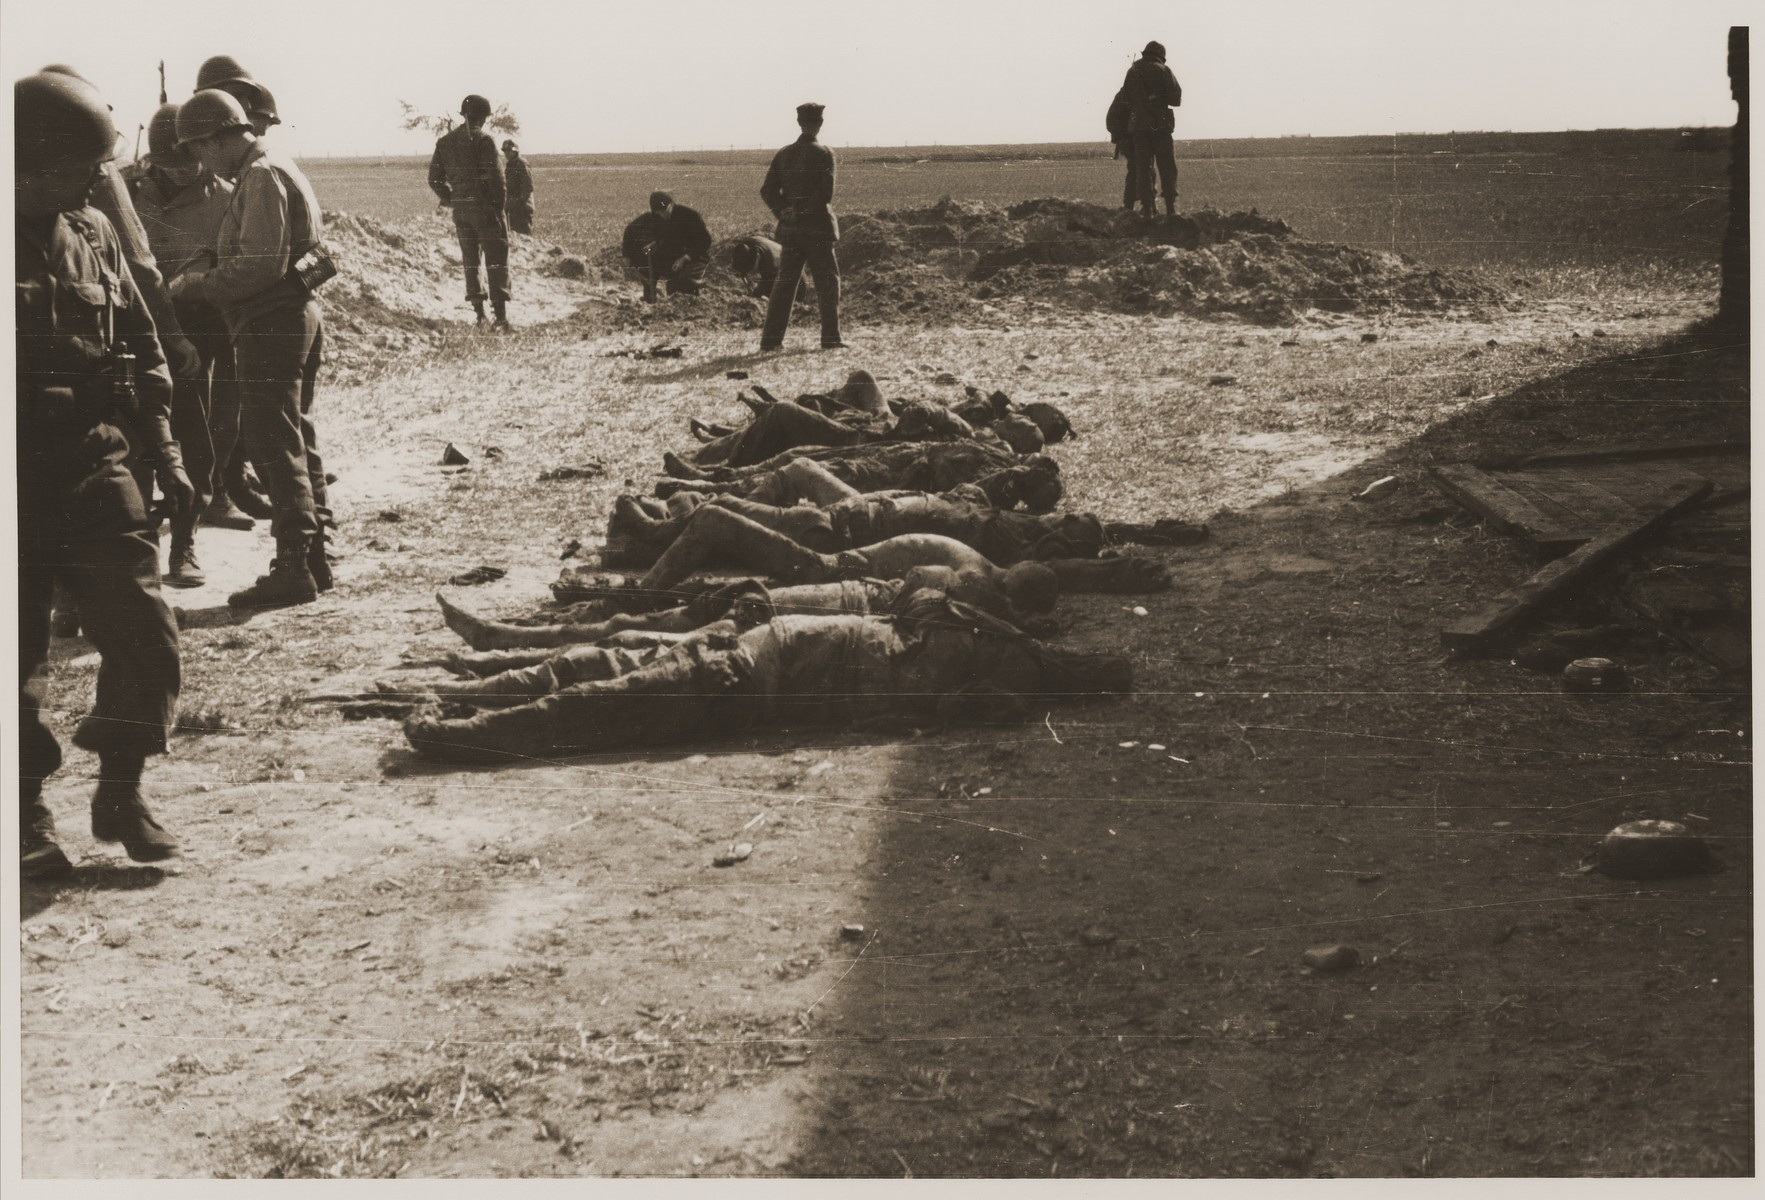 Under the supervision of American soldiers, German civilians exhume a mass grave containing the bodies of concentration camp prisoners killed by the SS in a barn outside Gardelegen.